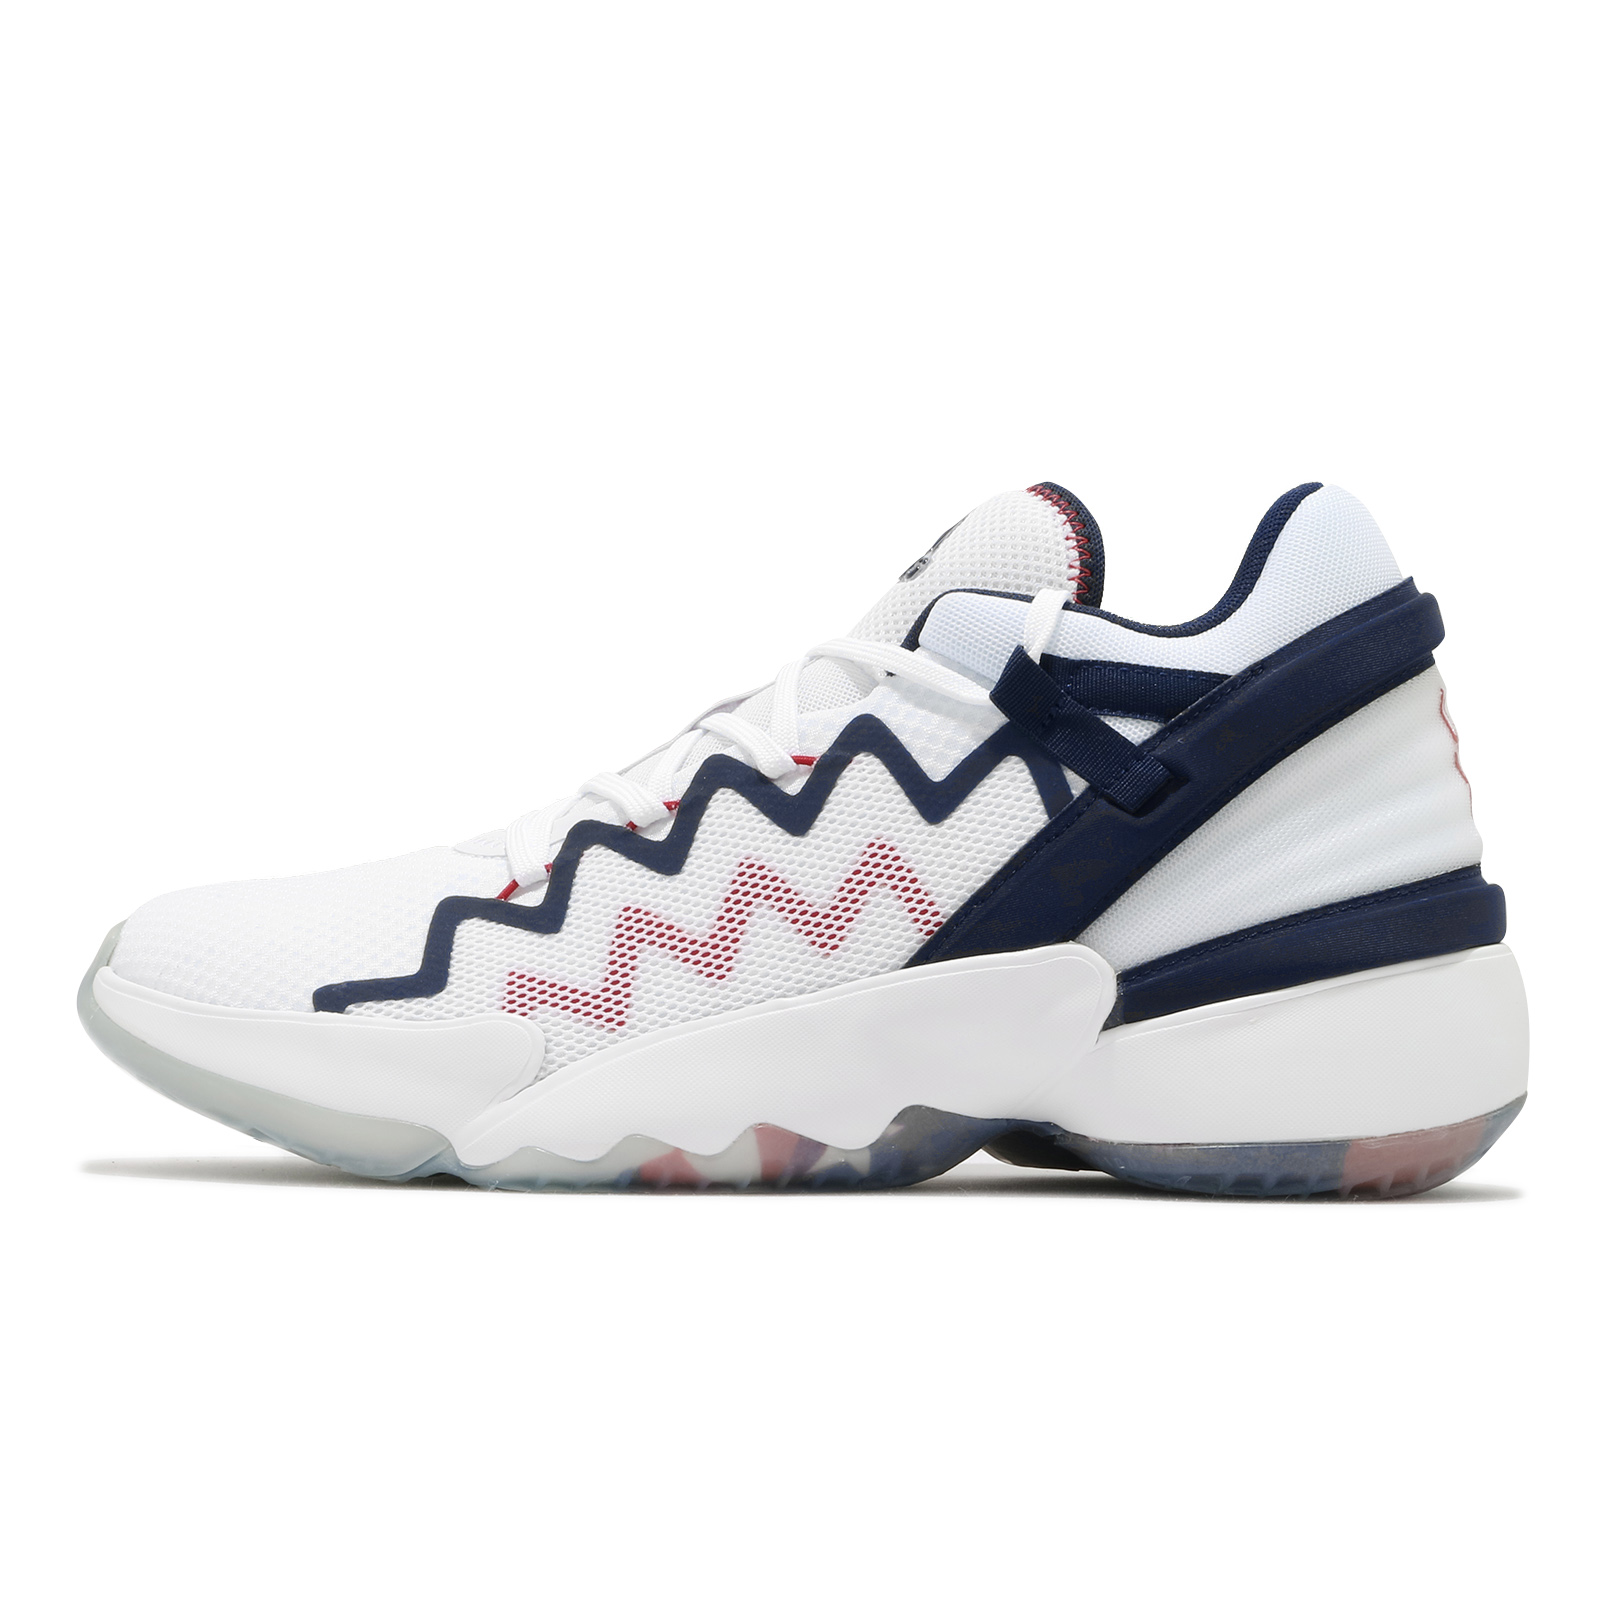 ven Nevada Quinto  Adidas Basketball Shoes D.o.n. Issue 2 Gca White Navy Red Usa Men's Shoes  Adidas | Shopee Malaysia